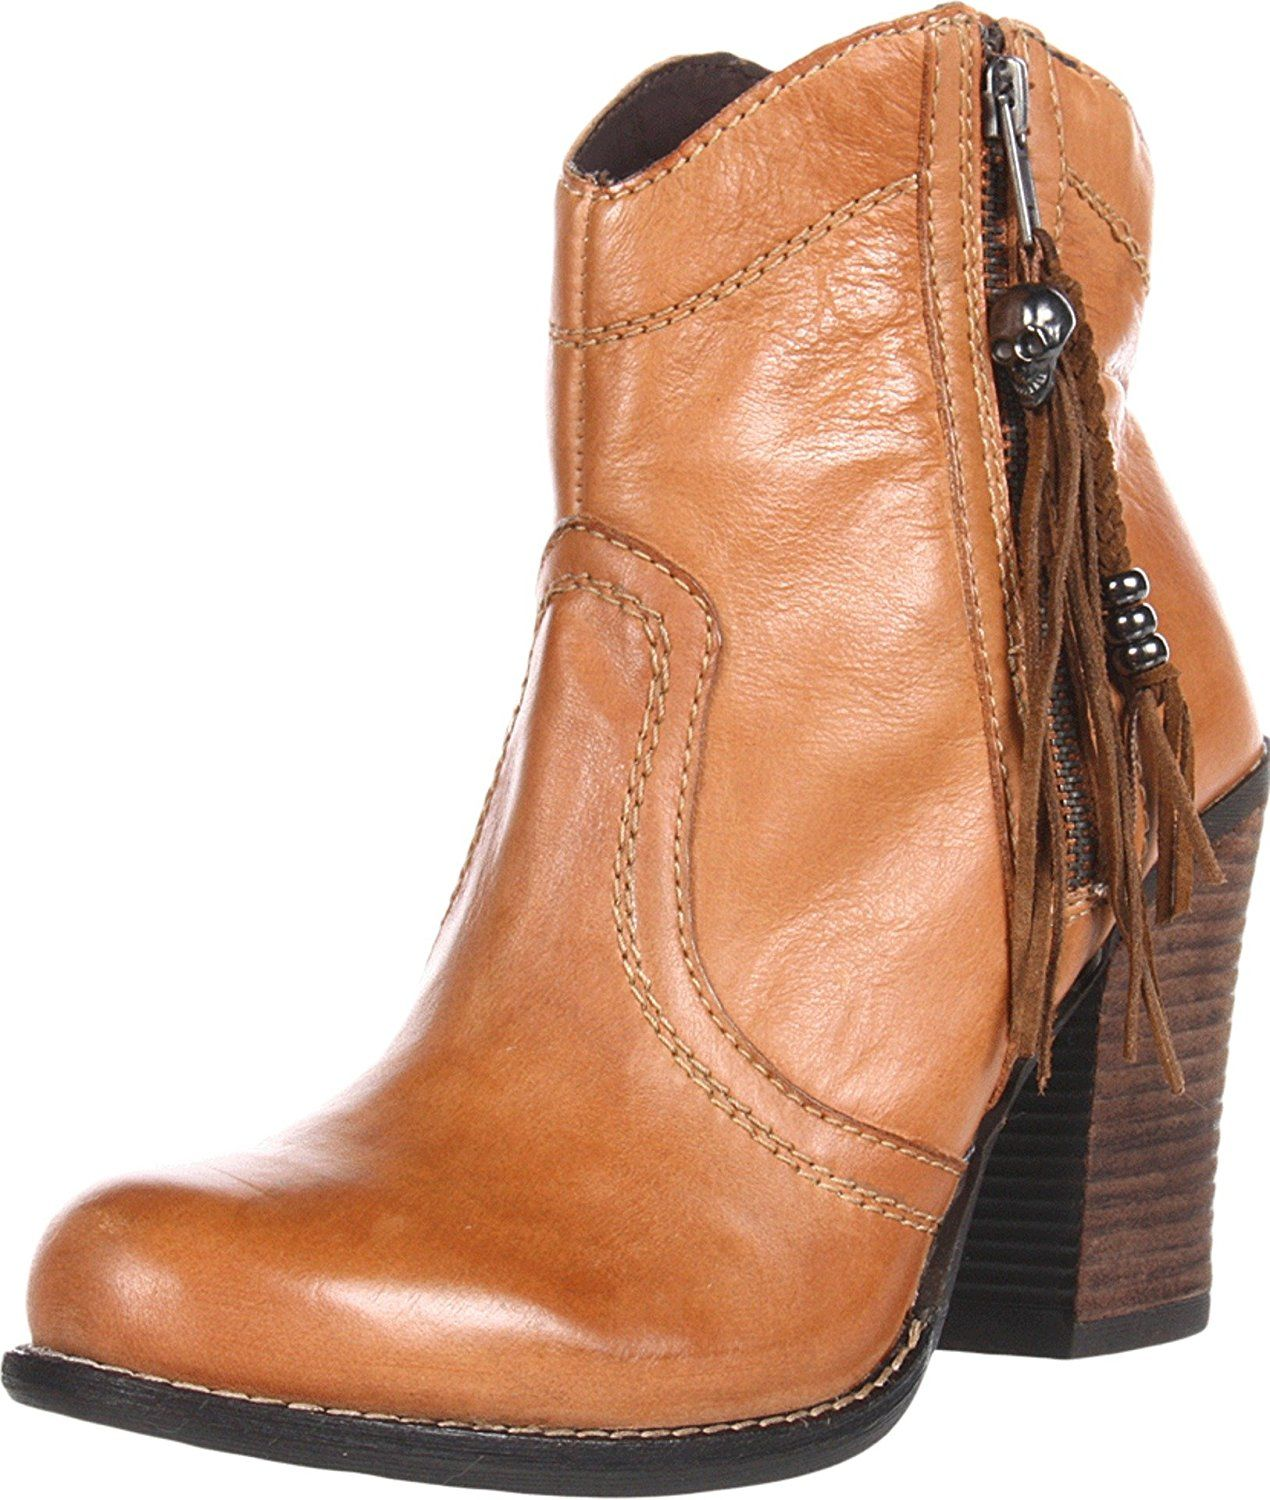 Brooklyn Women's Hanly Ankle Boot